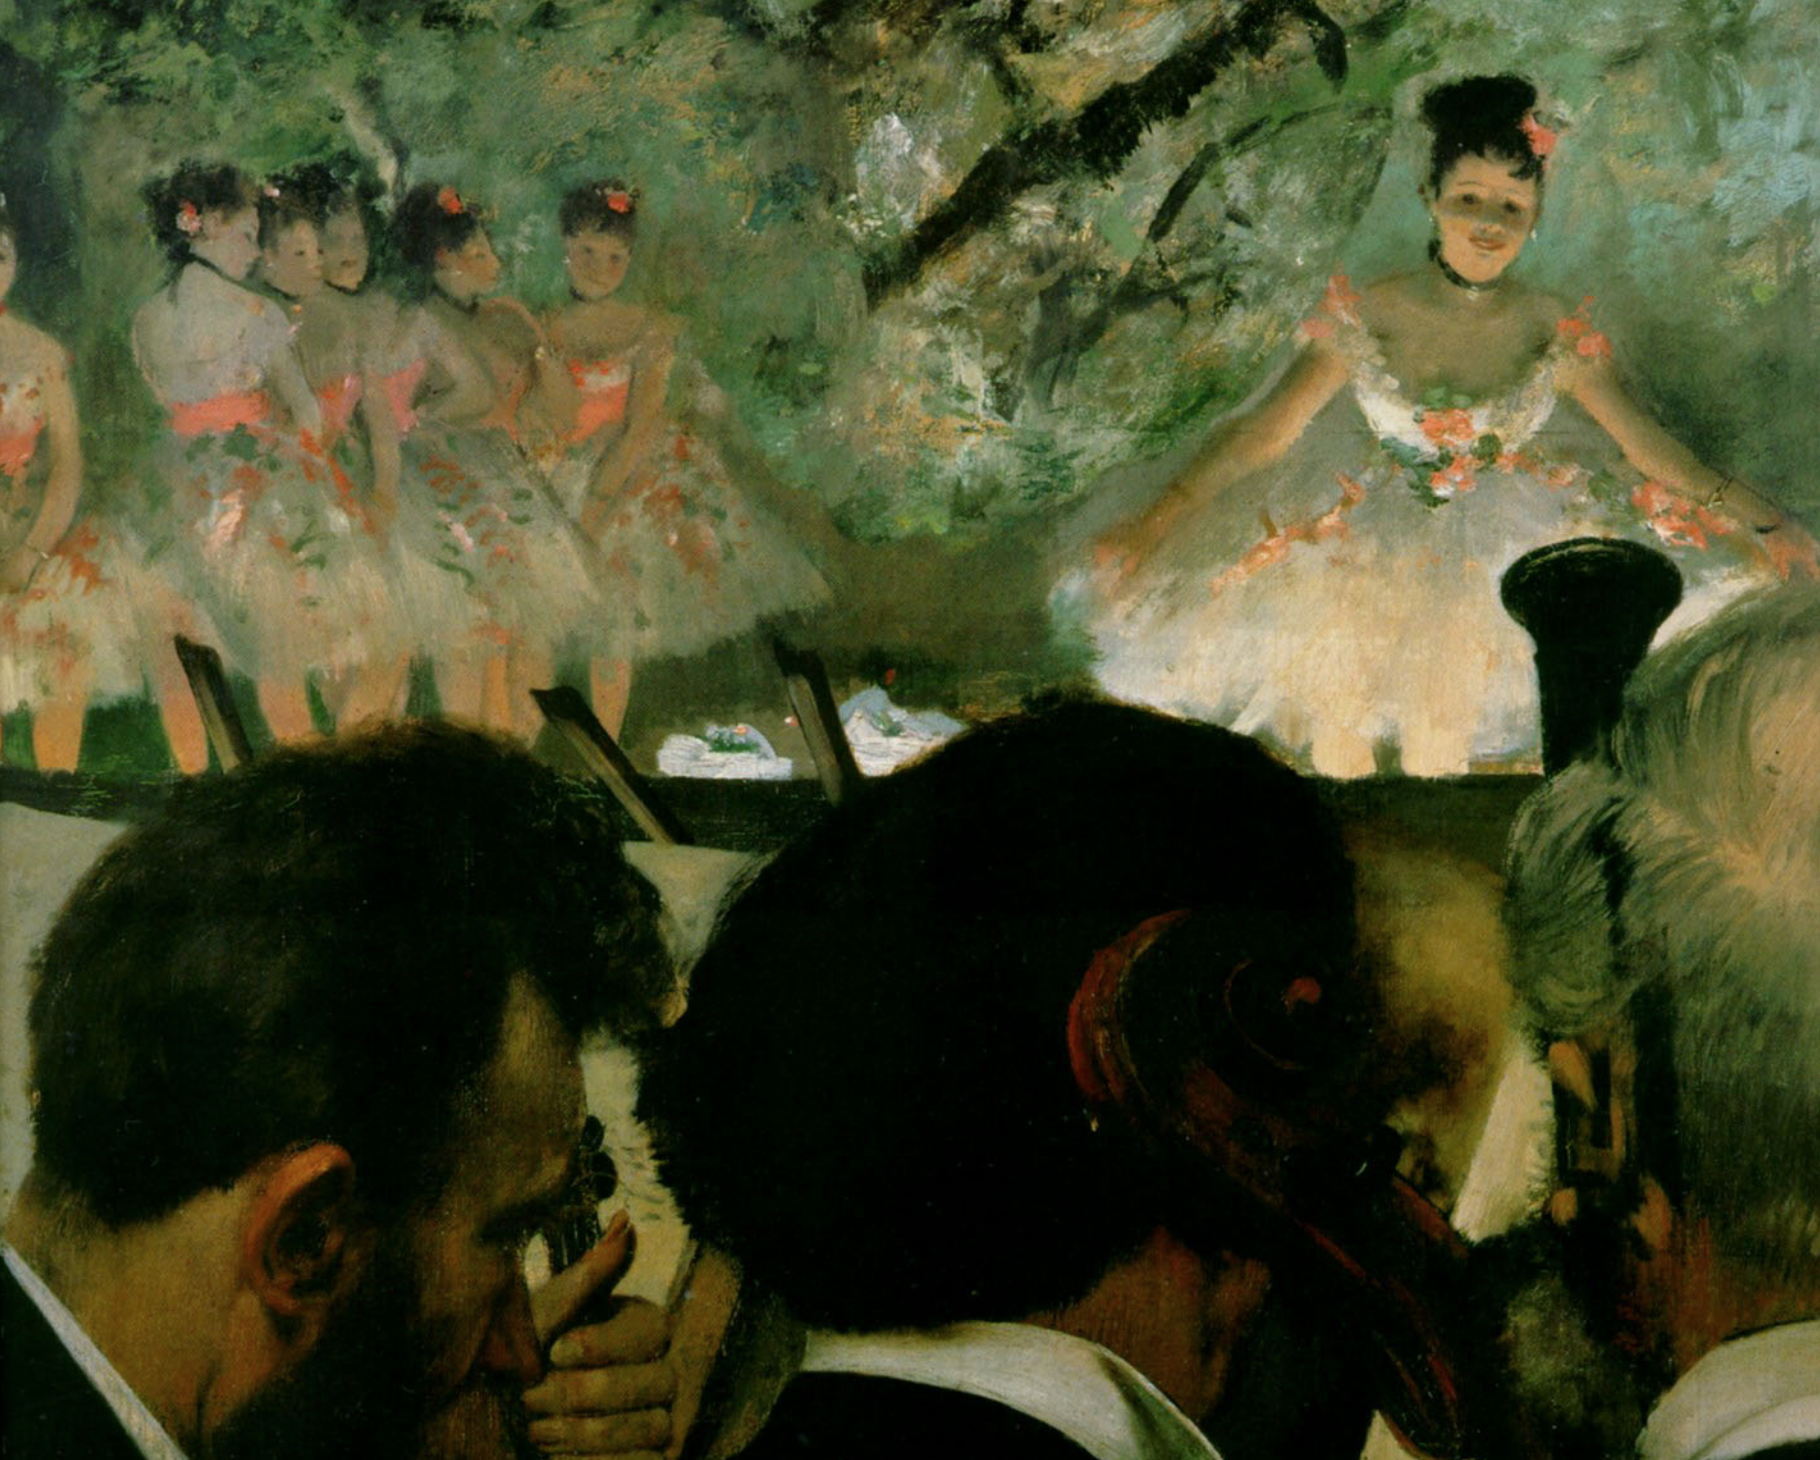 Impressionism in Music & the Arts